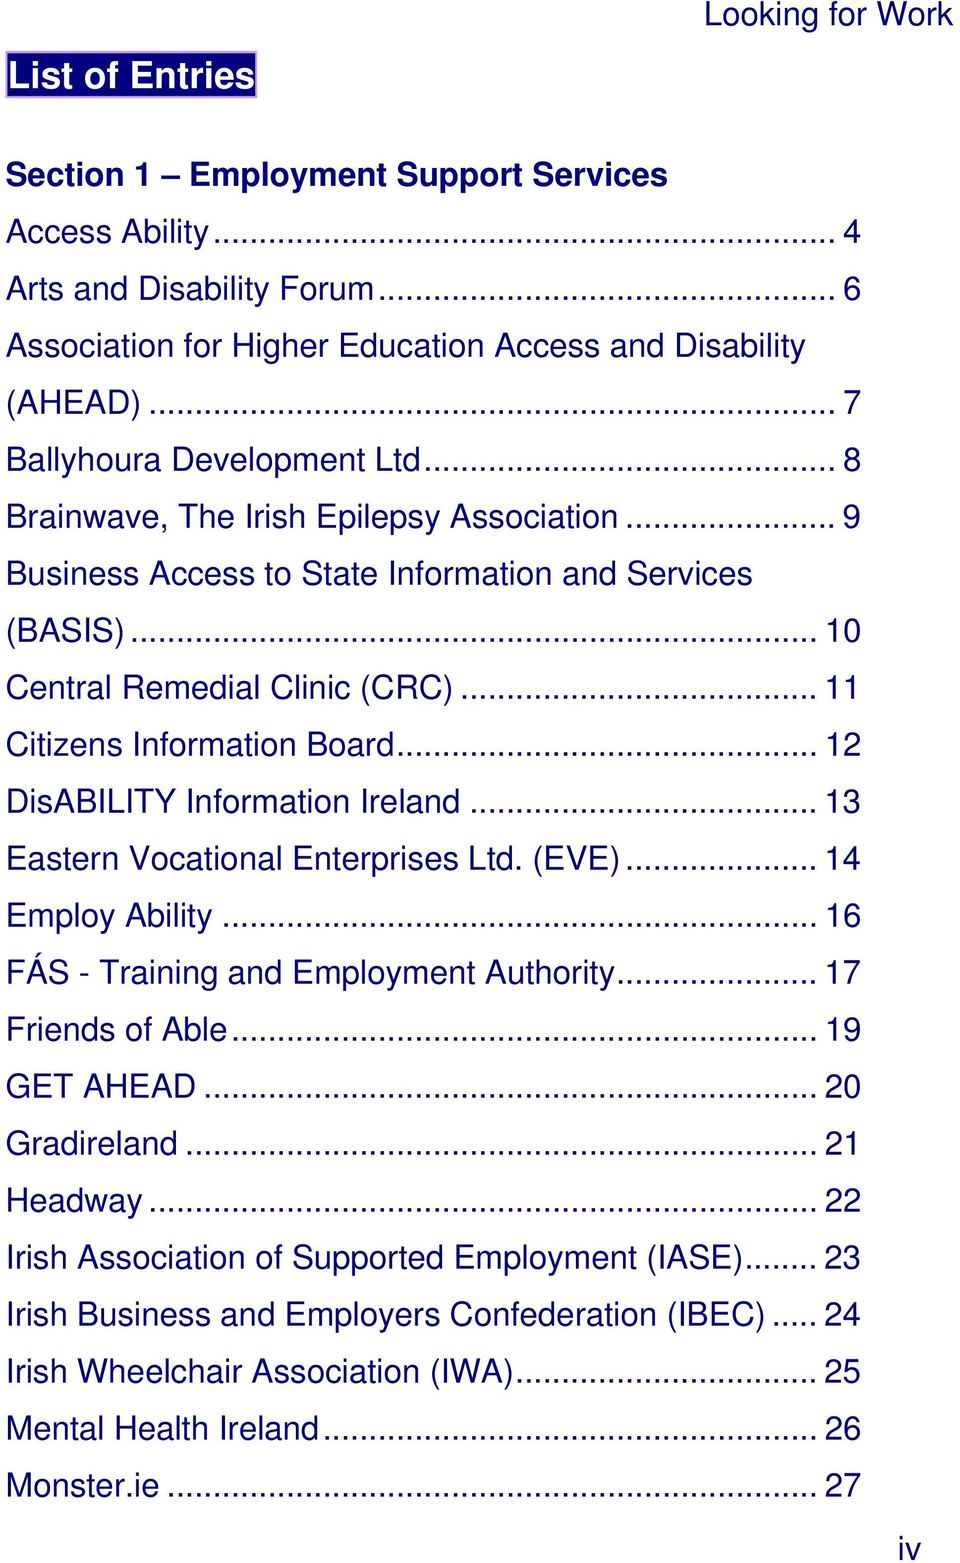 .. 11 Citizens Information Board... 12 DisABILITY Information Ireland... 13 Eastern Vocational Enterprises Ltd. (EVE)... 14 Employ Ability... 16 FÁS - Training and Employment Authority.